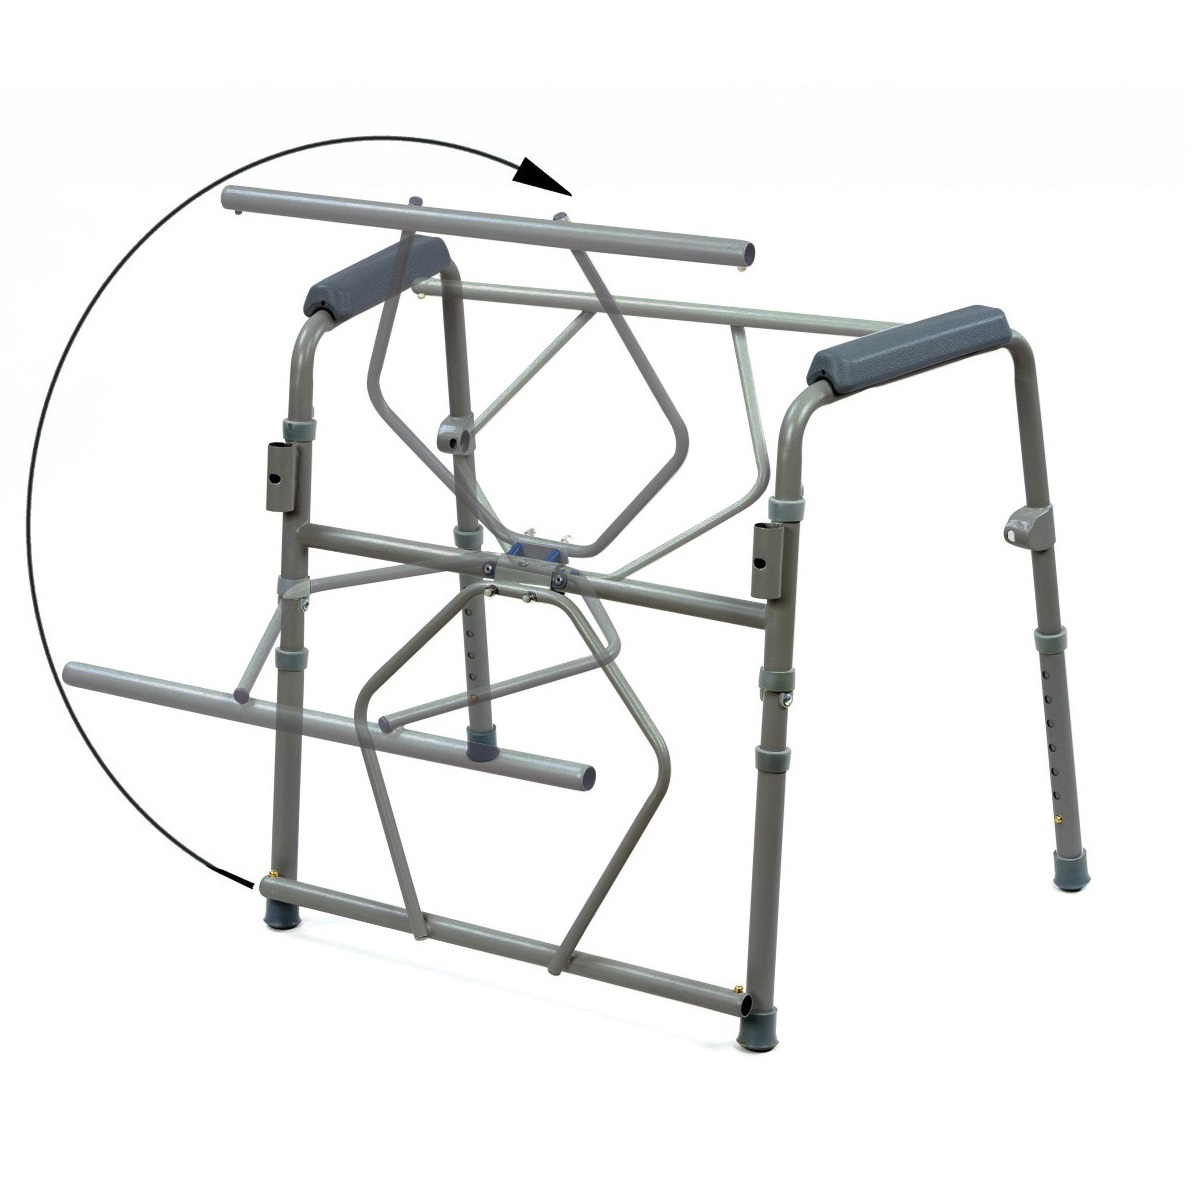 Standard Folding Commode - ON SALE - Now Only R799. While Stocks Last